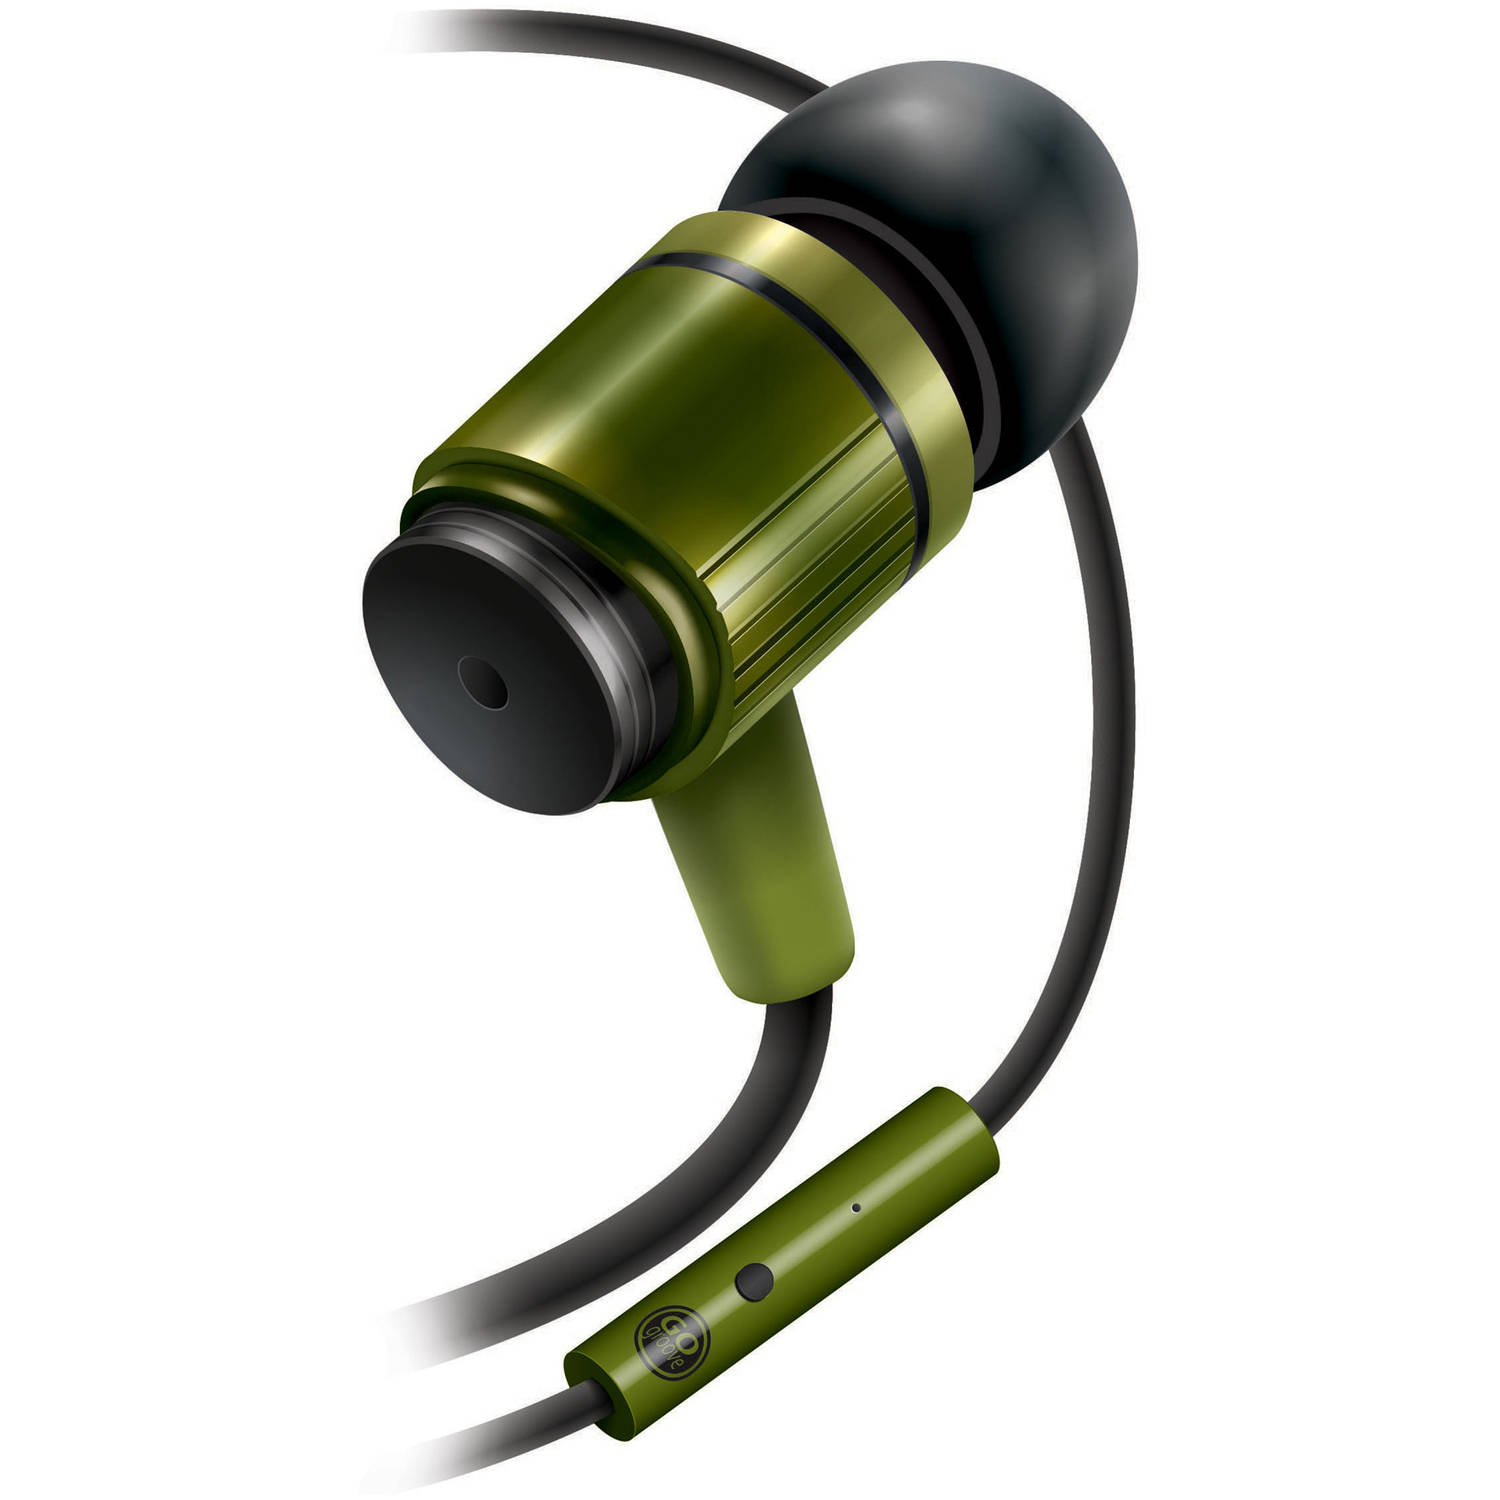 GOgroove AudiOHM RNF Army Green Ergonomic Headphones with Lifetime Warranty With Enhanced Bass and Metal Driver Housing